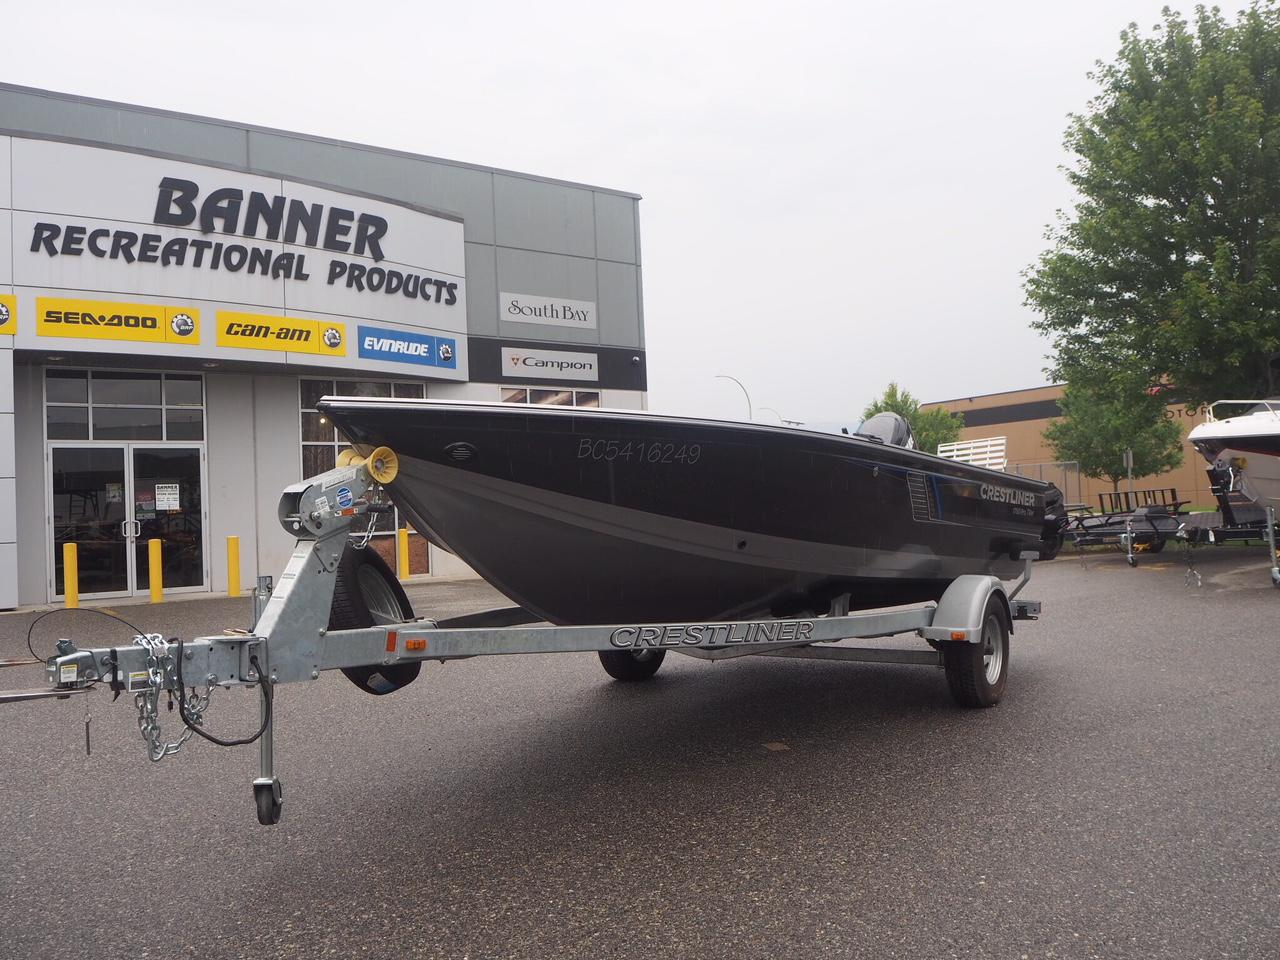 For Sale: 2016 Crestliner 1750 Pro-tiller ft<br/>Banner Recreation Products